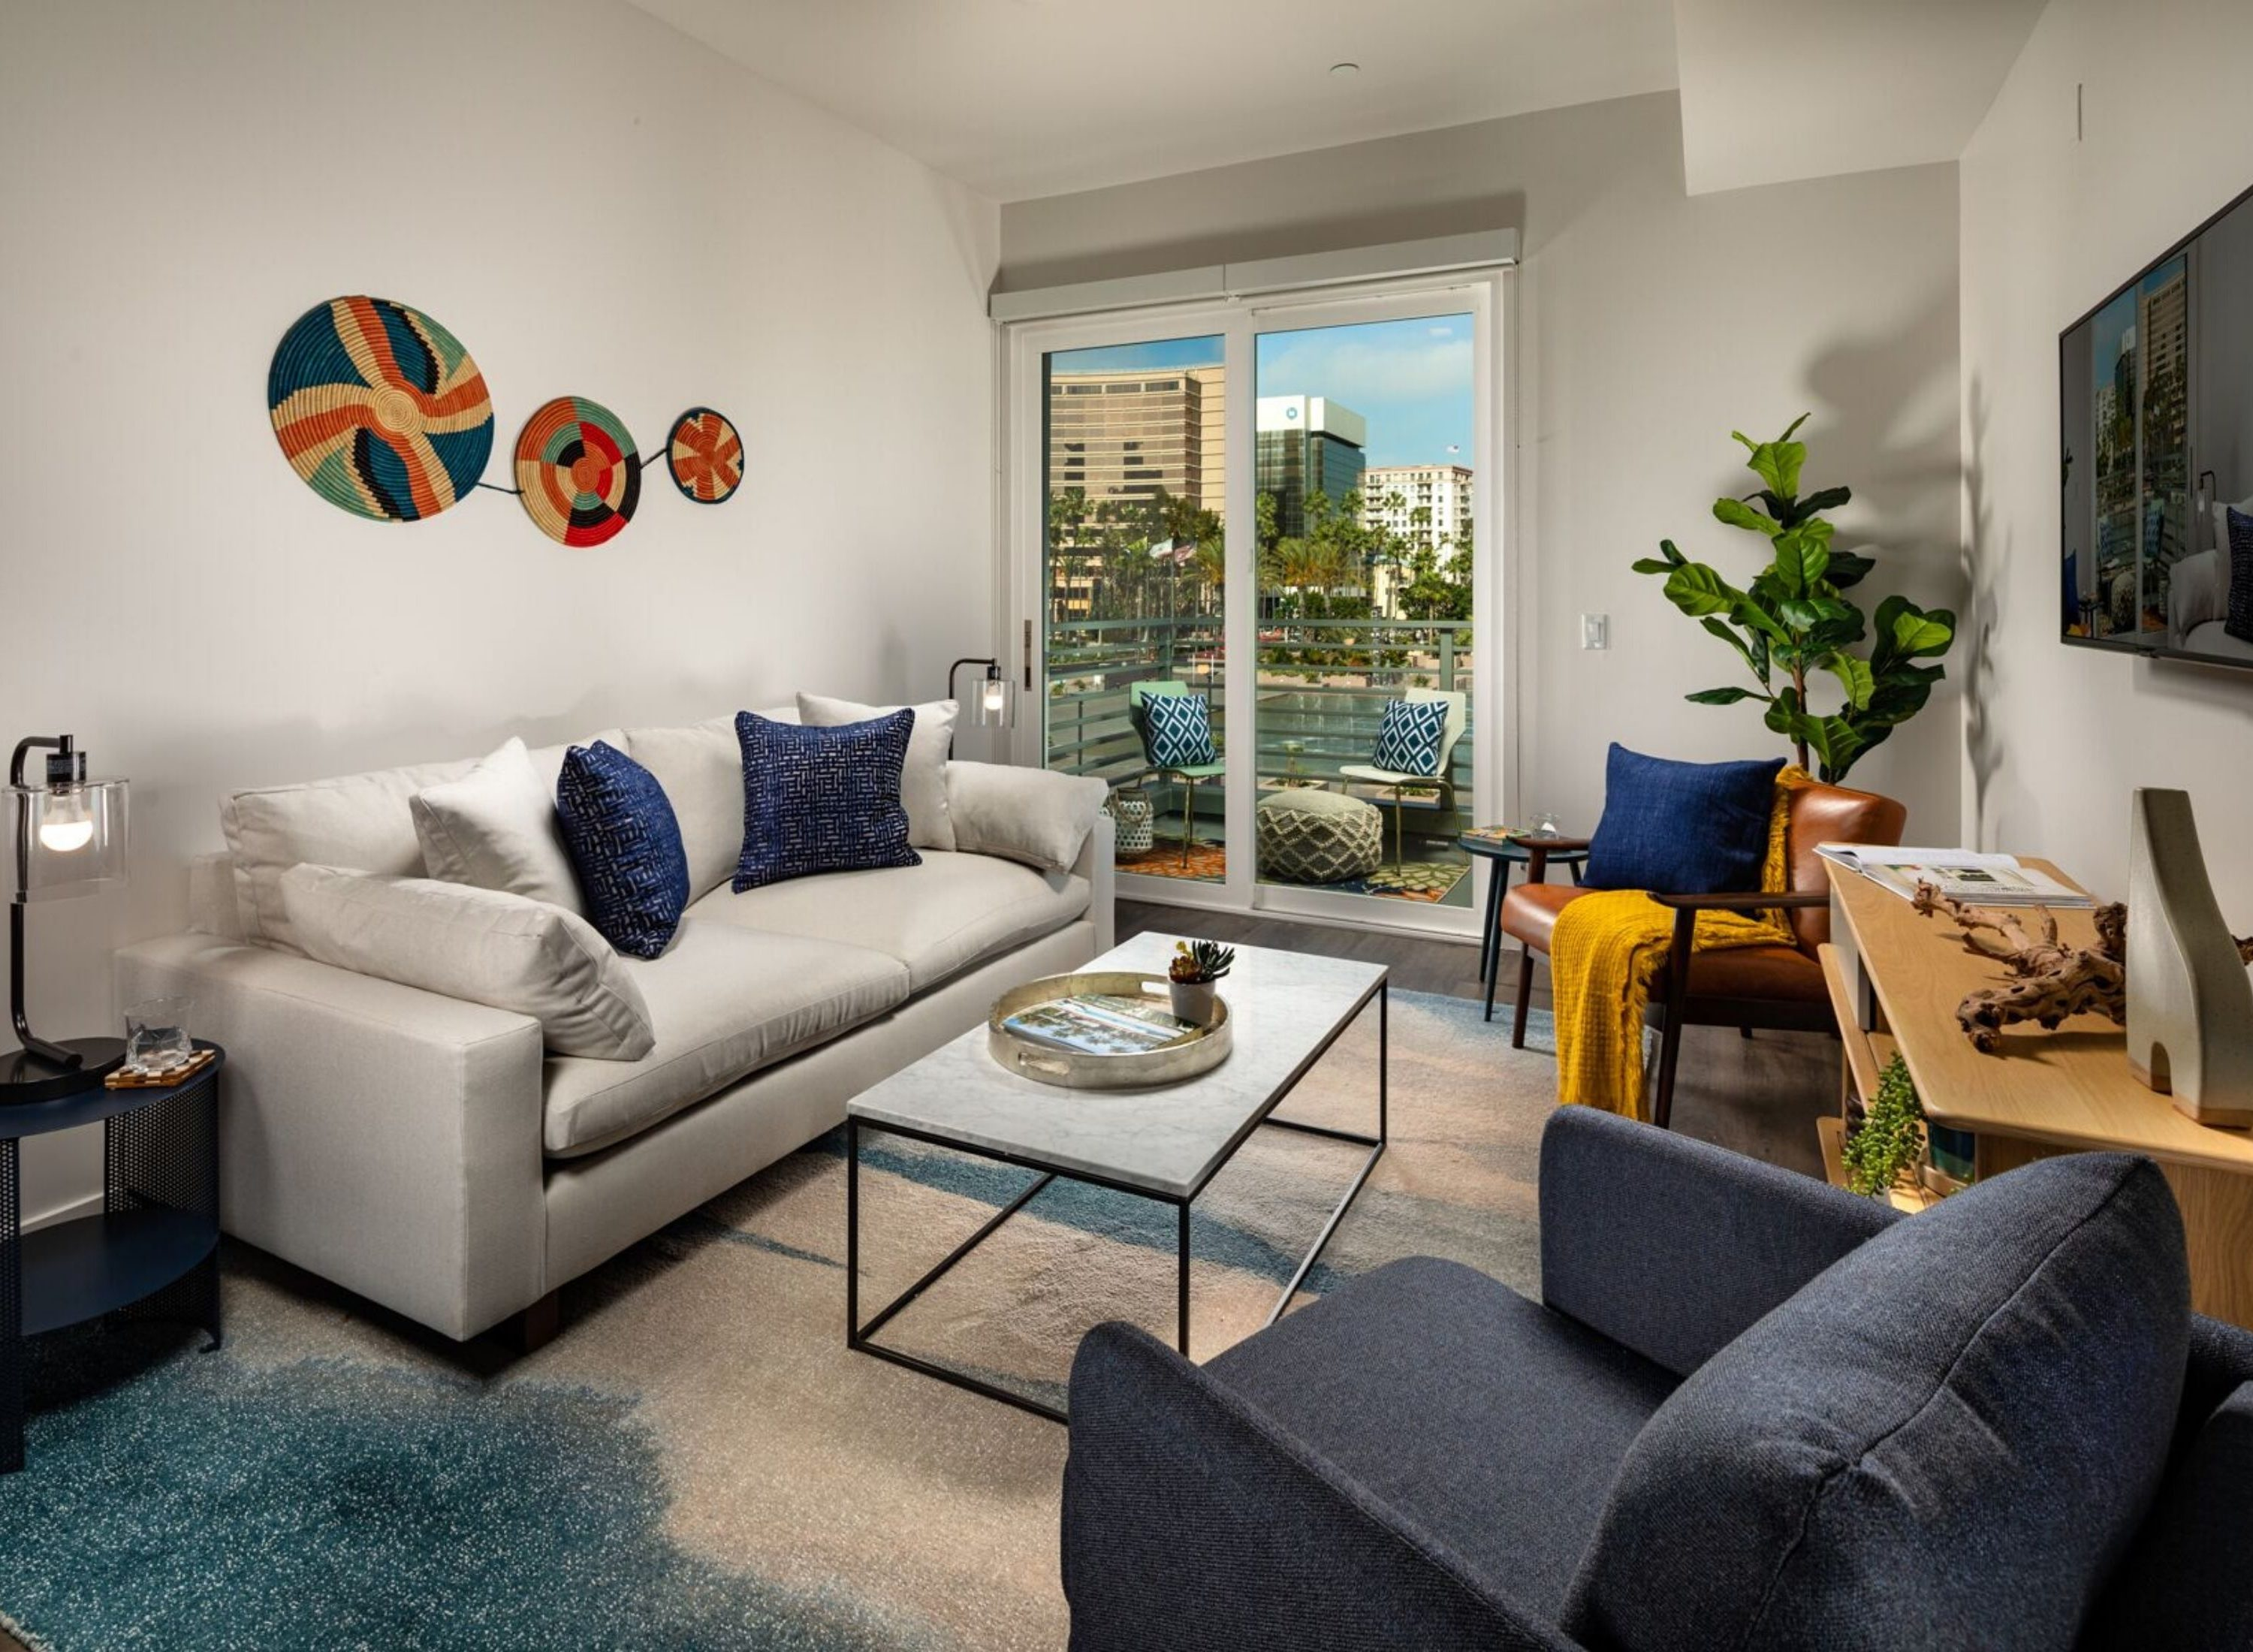 Living Room at the Crest Long Beach